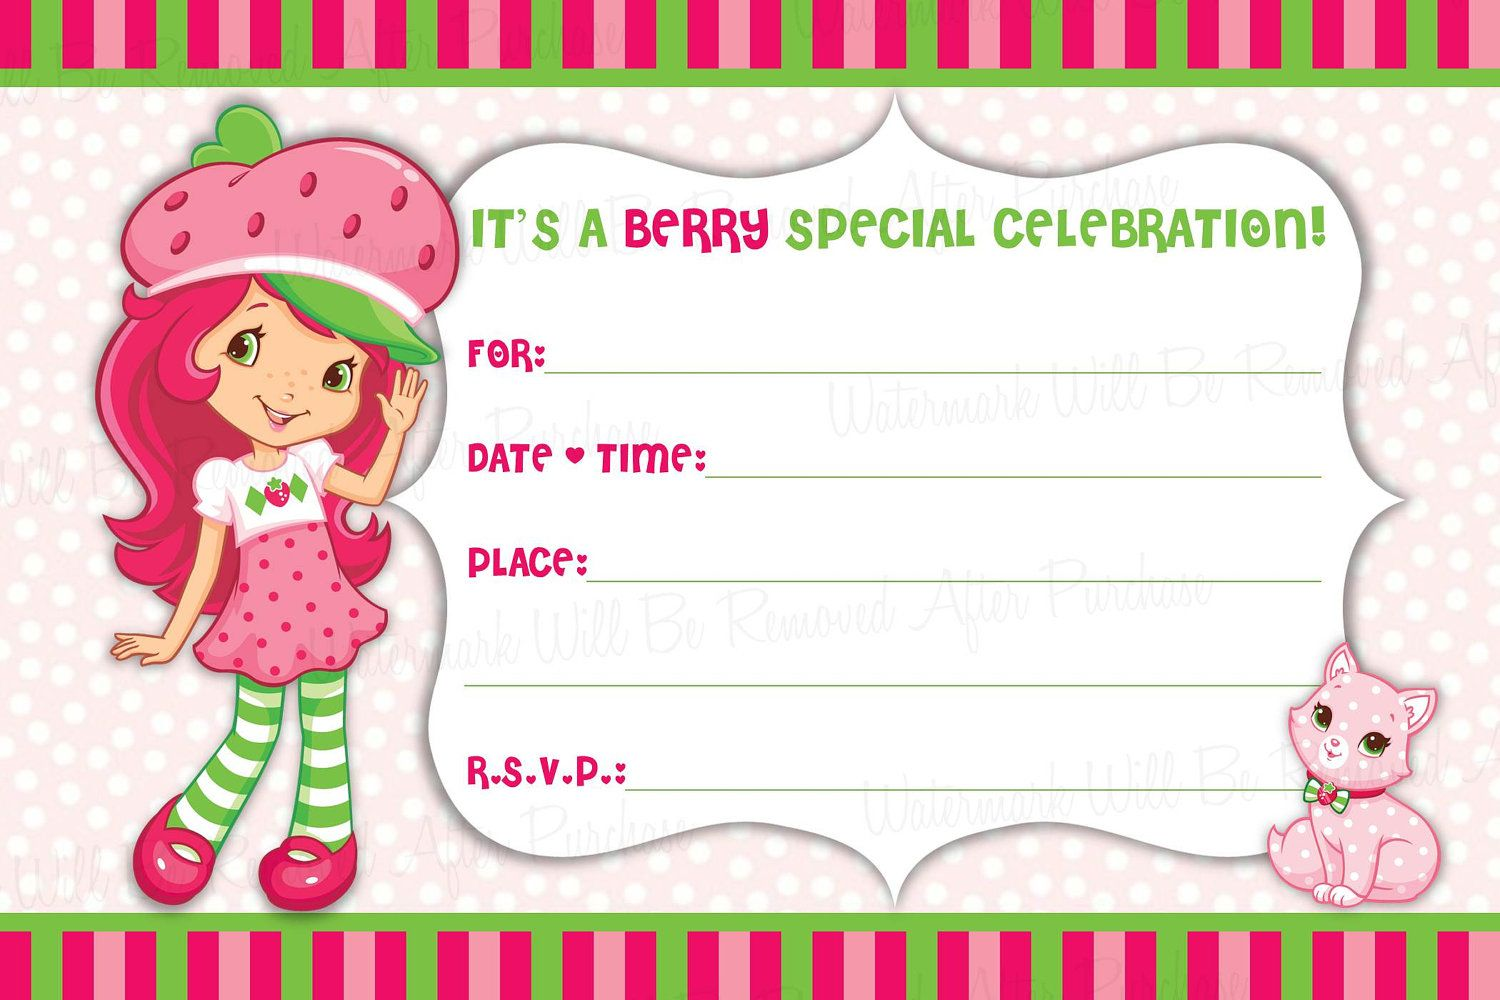 Strawberry shortcake free printable birthday invitations projects strawberry shortcake free printable birthday invitations filmwisefo